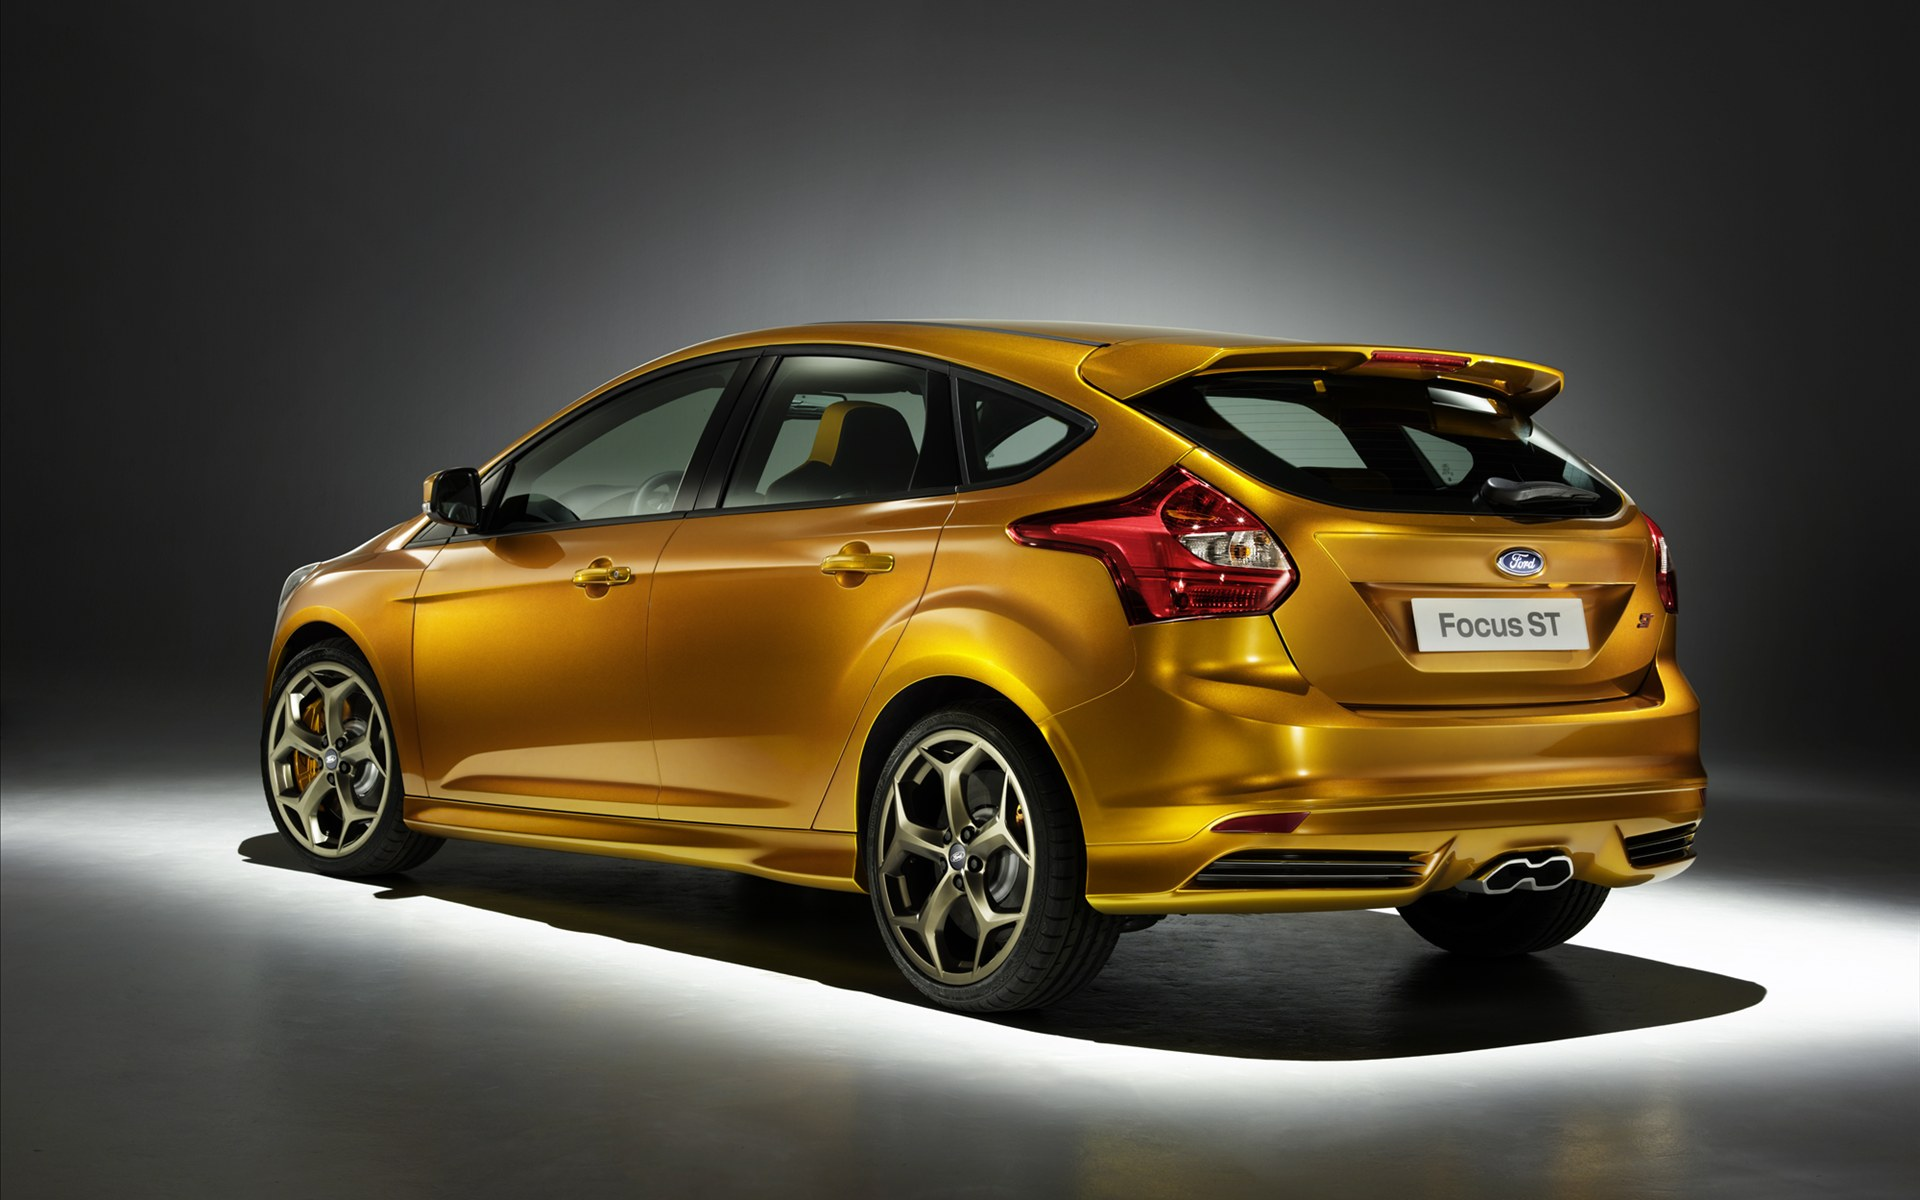 ford focus st2 widescreen 02 free desktop wallpapers for widescreen hd and mobile. Black Bedroom Furniture Sets. Home Design Ideas